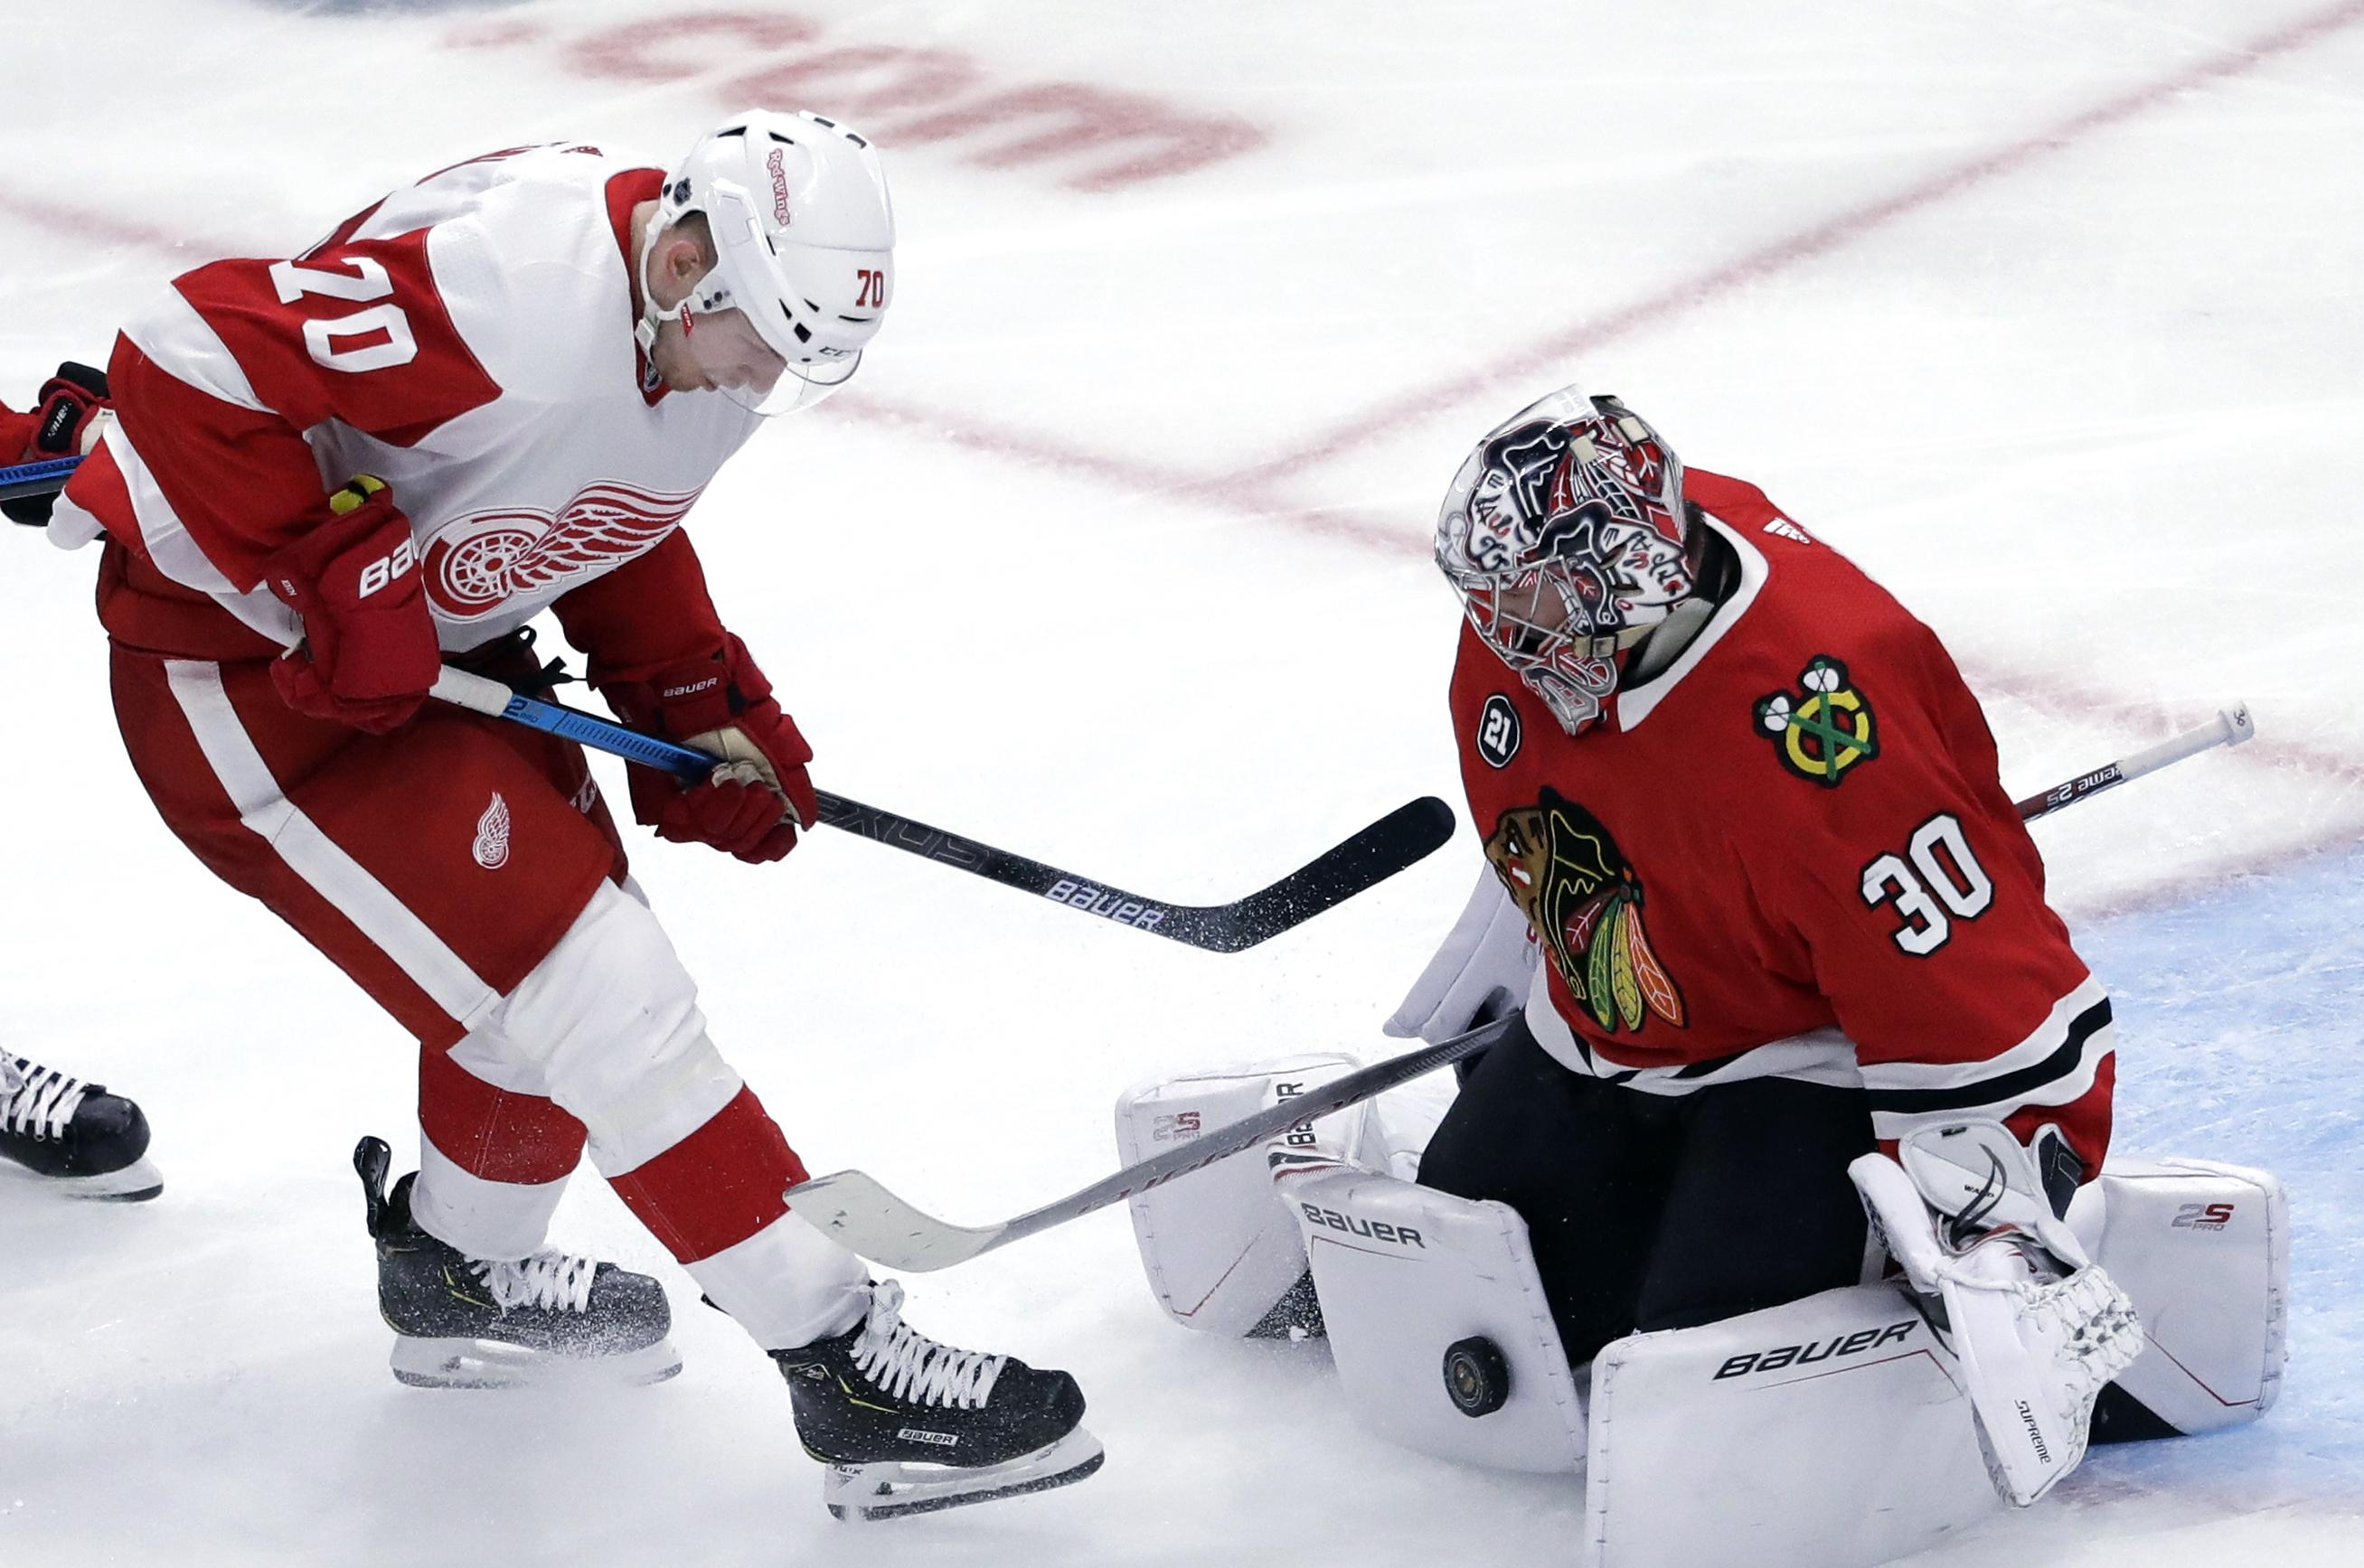 NHL roundup: Blackhawks beat Red Wings 5-2 for 7th straight victory